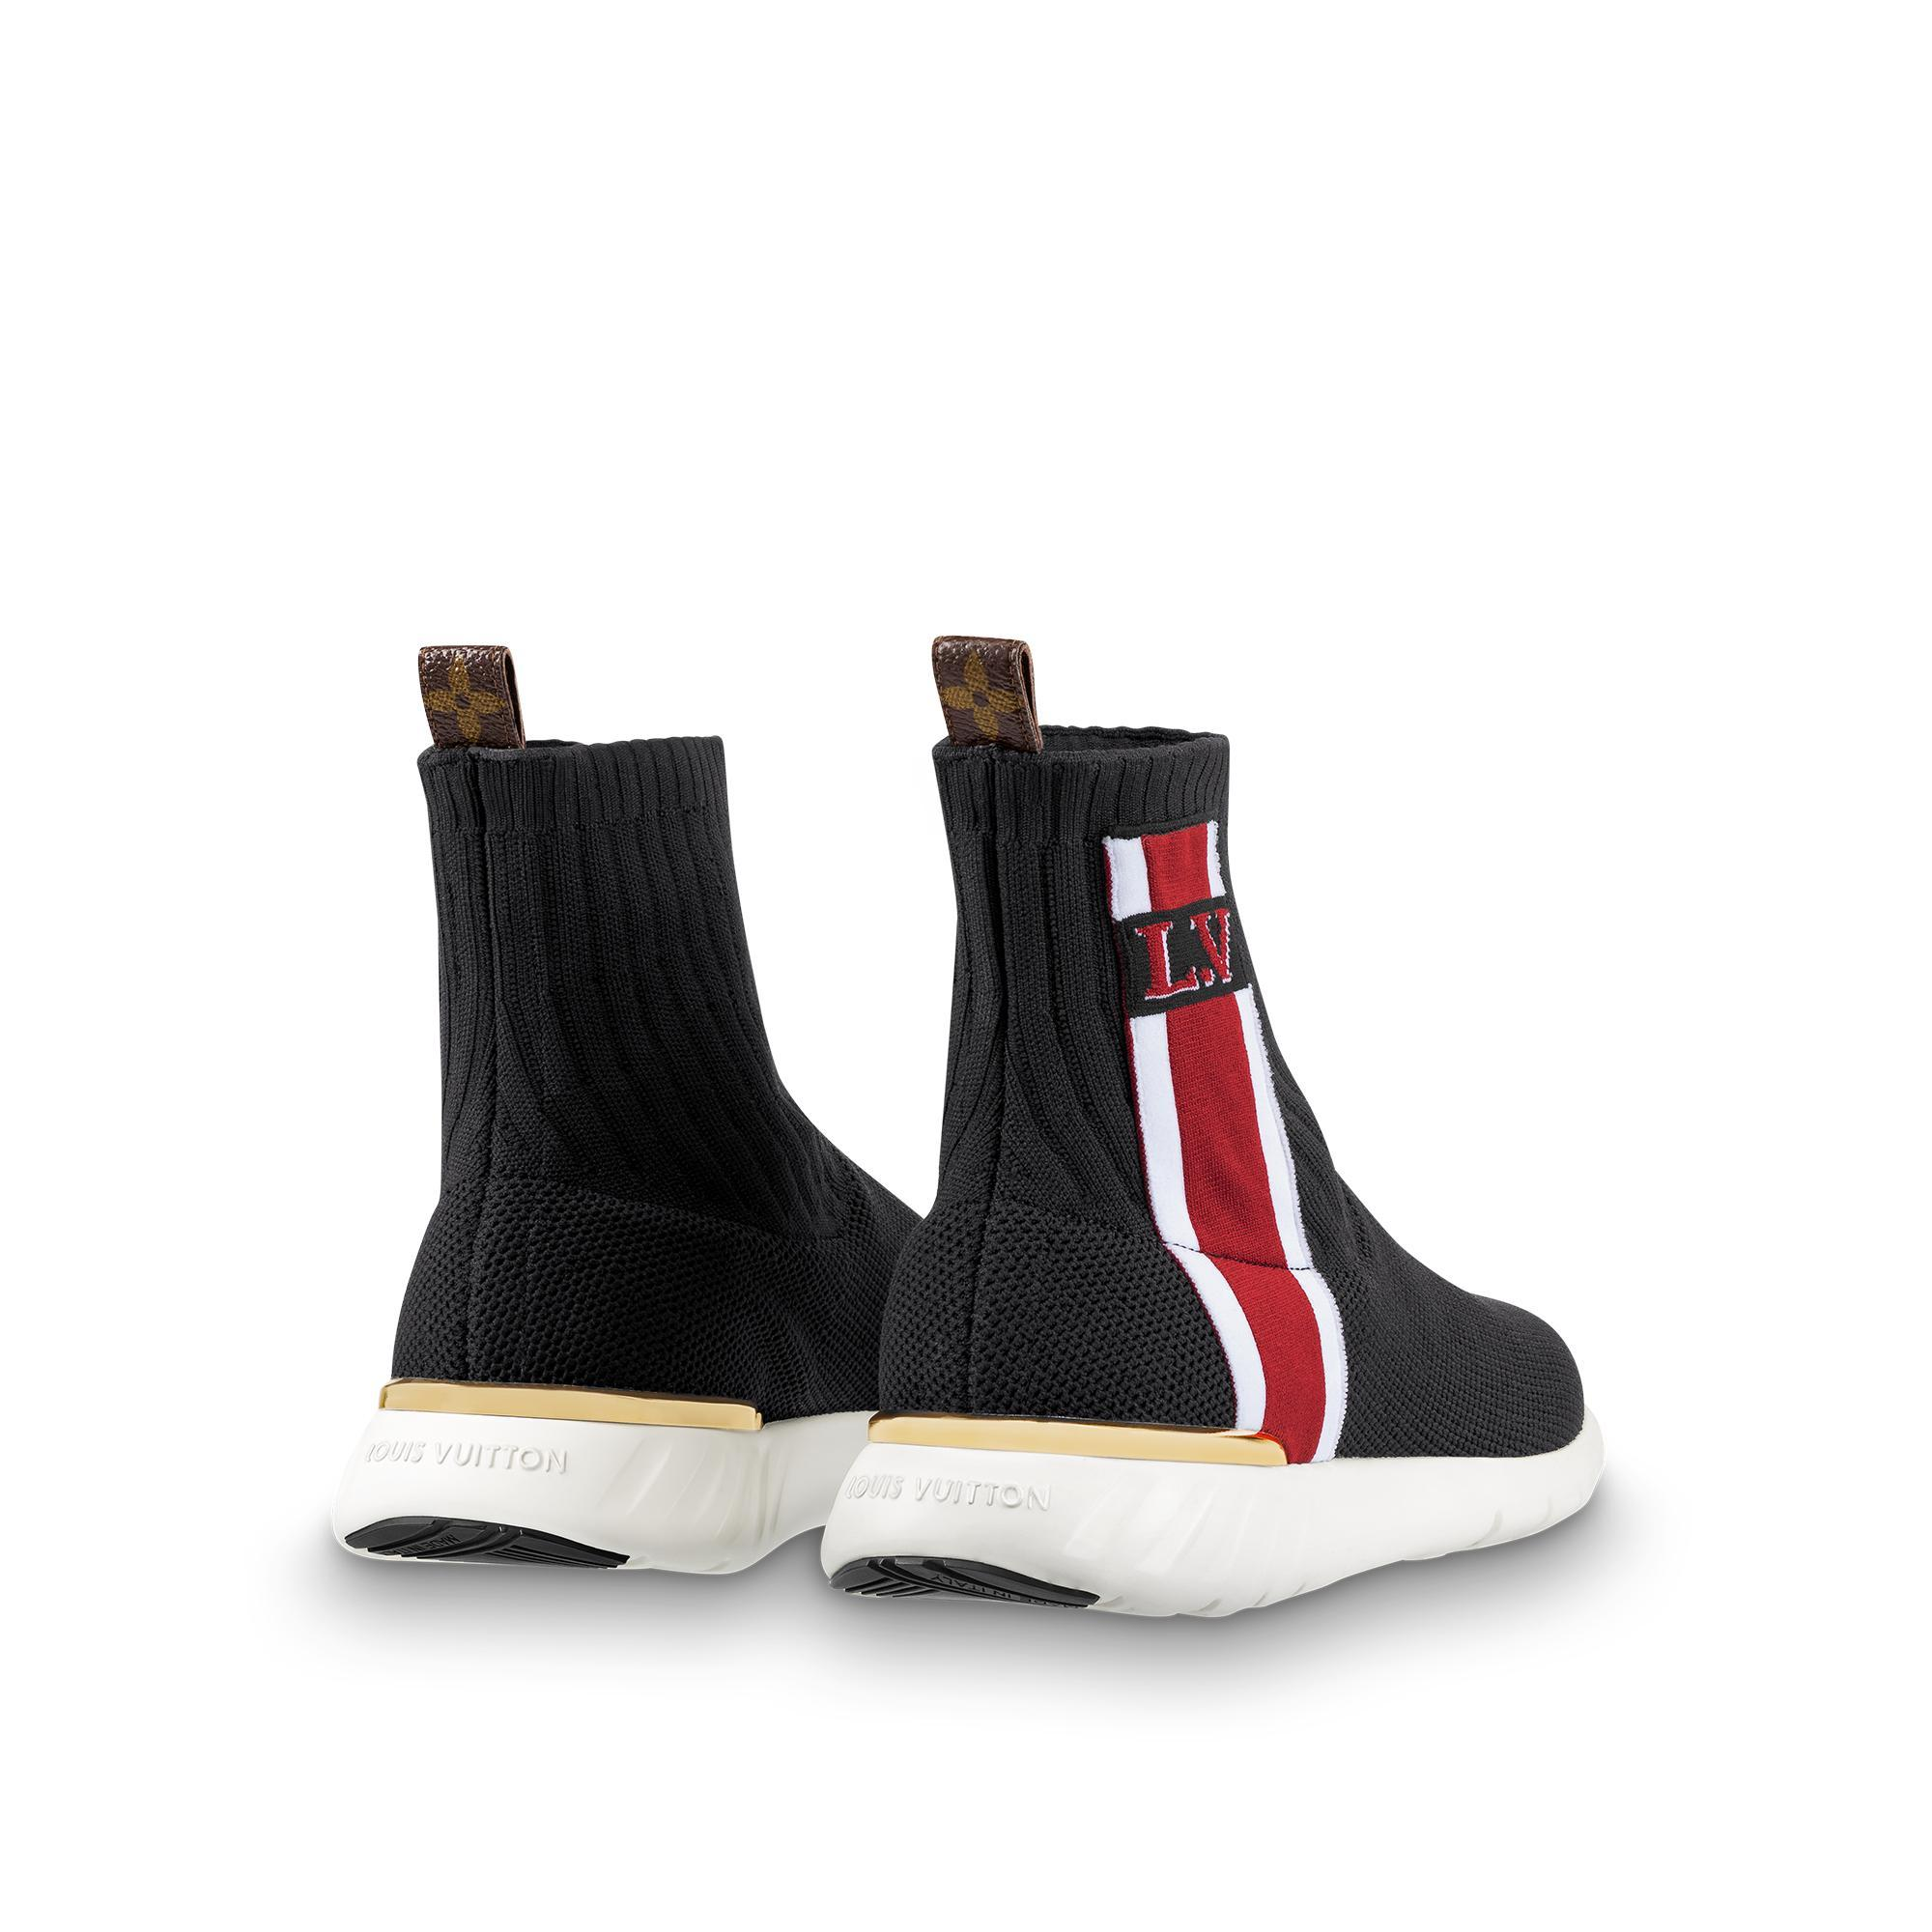 ddda8c4ab11b Louis Vuitton Aftergame Sneaker Boot In Noir